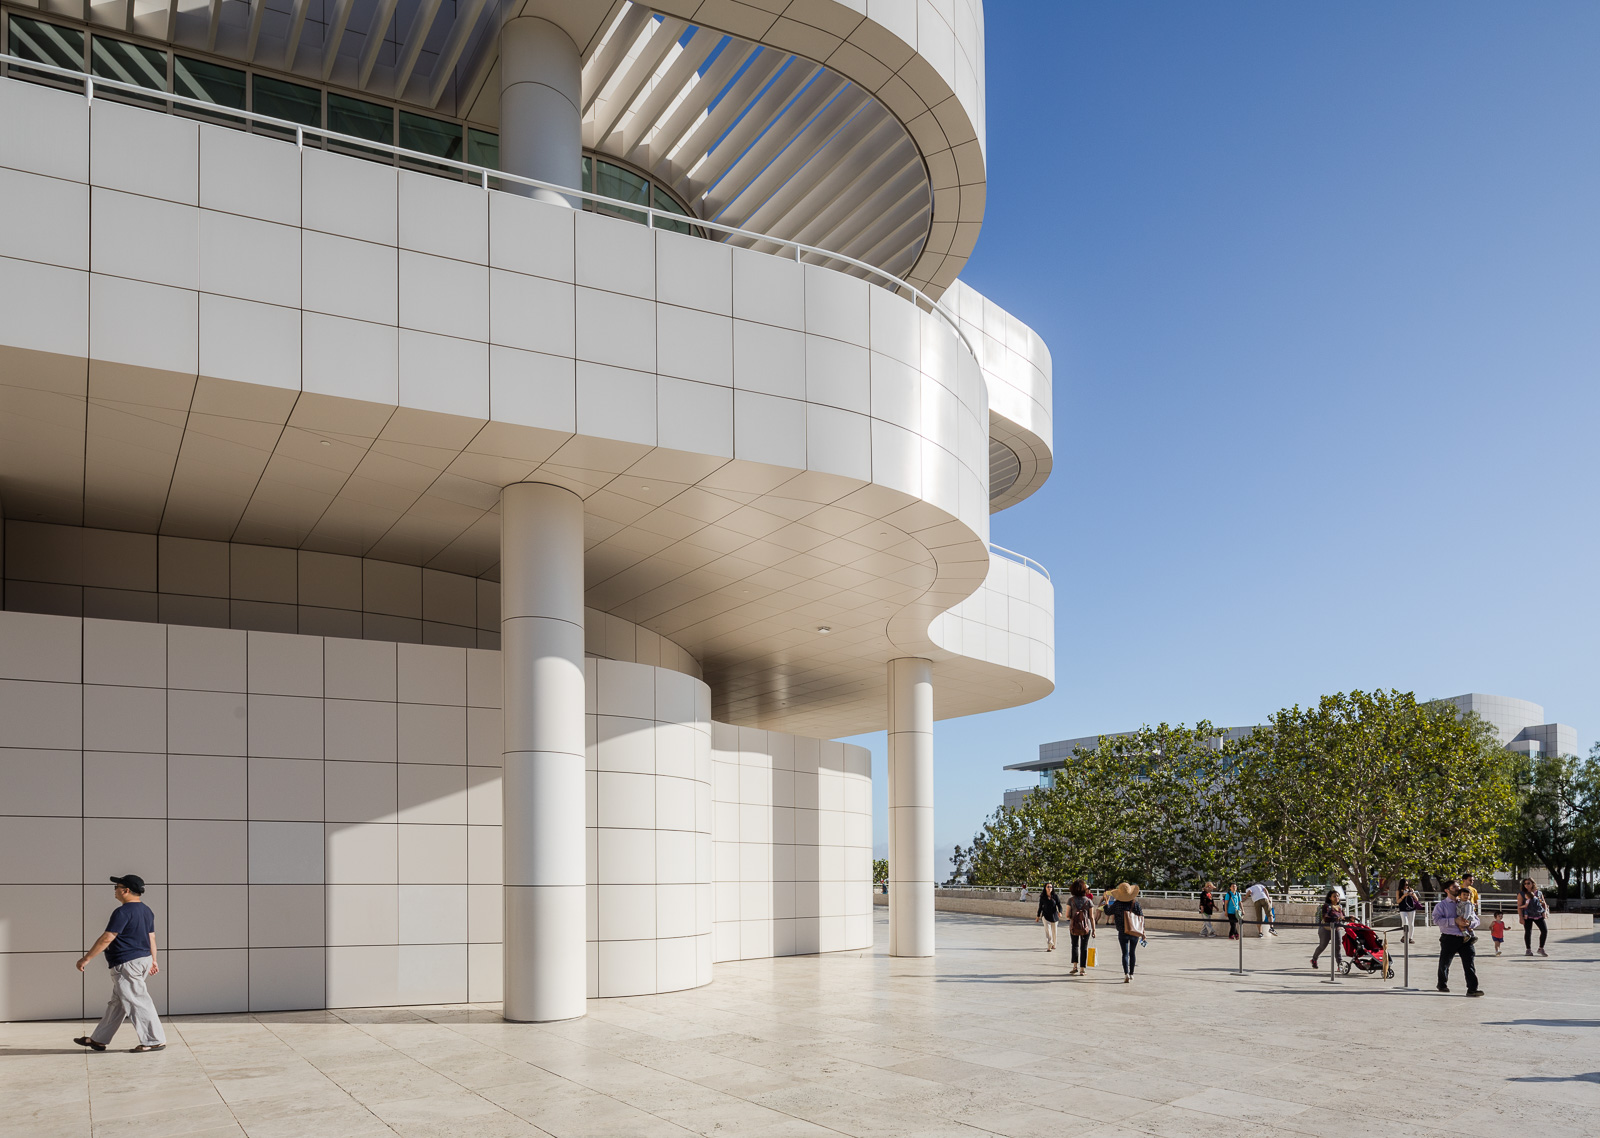 Exteriors of the Getty Center museum in Los Angeles